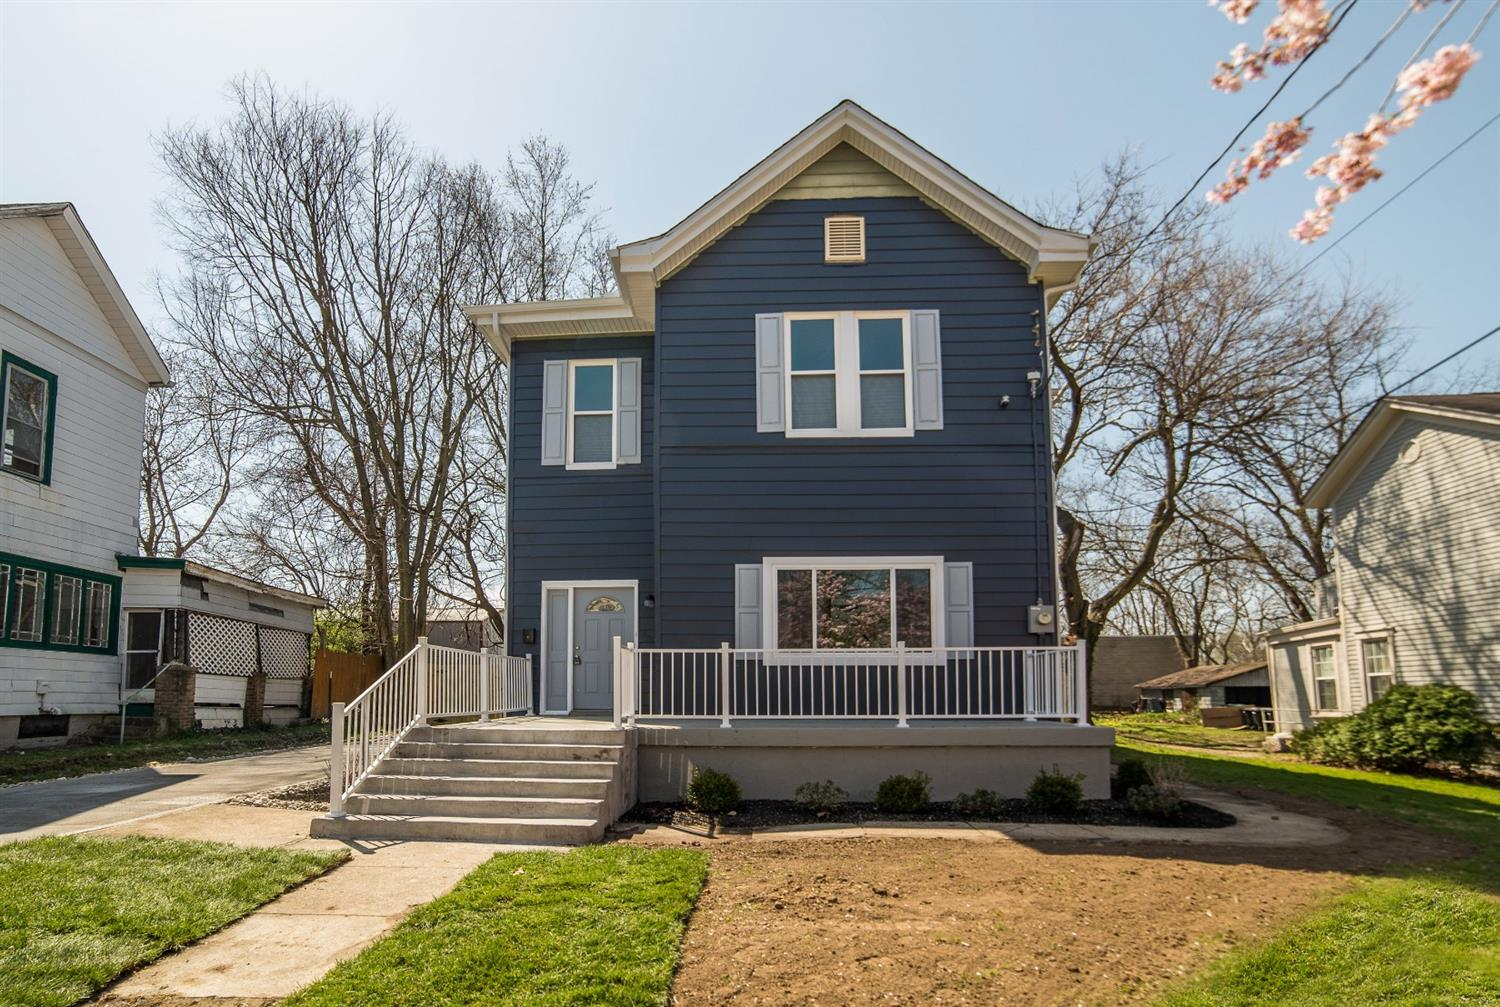 5805 Peabody Ave Madisonville, OH